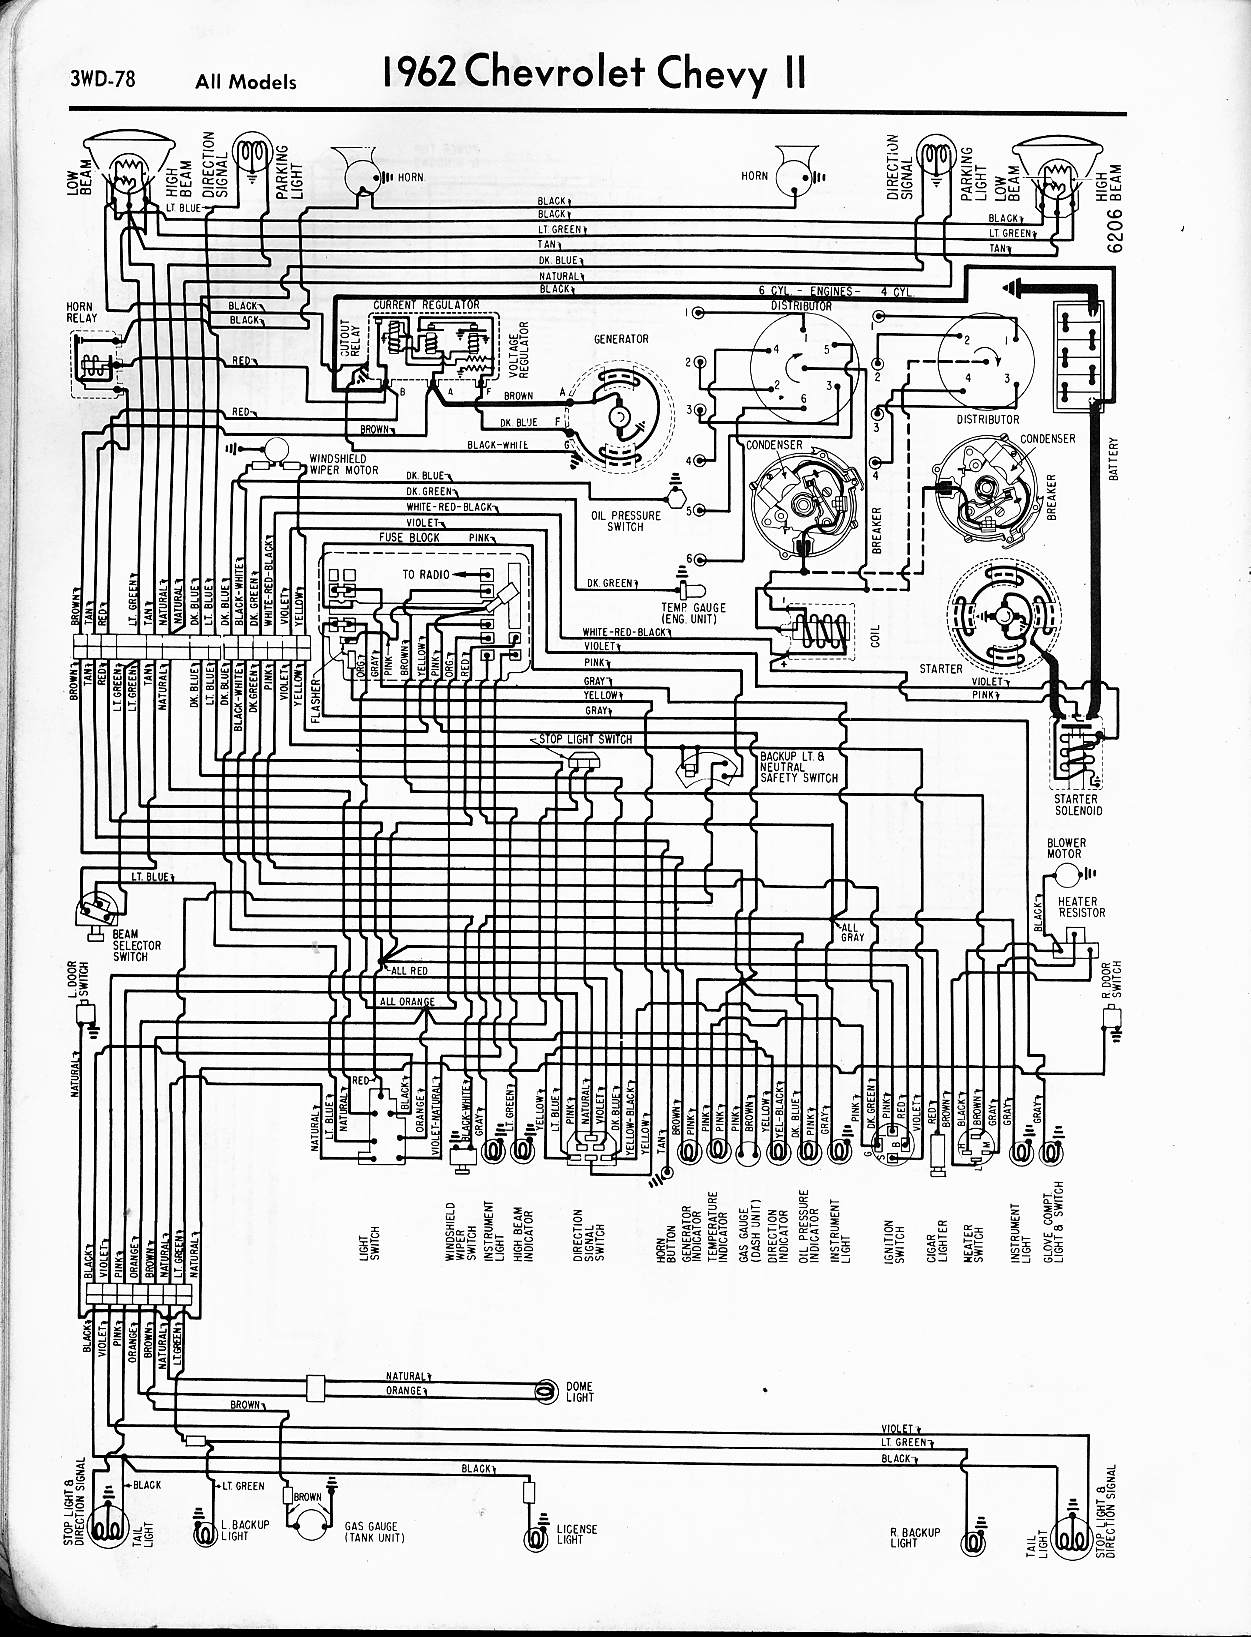 Firebirdwiringdiagram Zpsc F D also Mwire in addition Basic Wiring Harnesses For Trans Ams Of Trans Am Wiring Diagram further C D also Camarowiringdiagramfull. on 1979 pontiac firebird trans am wiring diagram